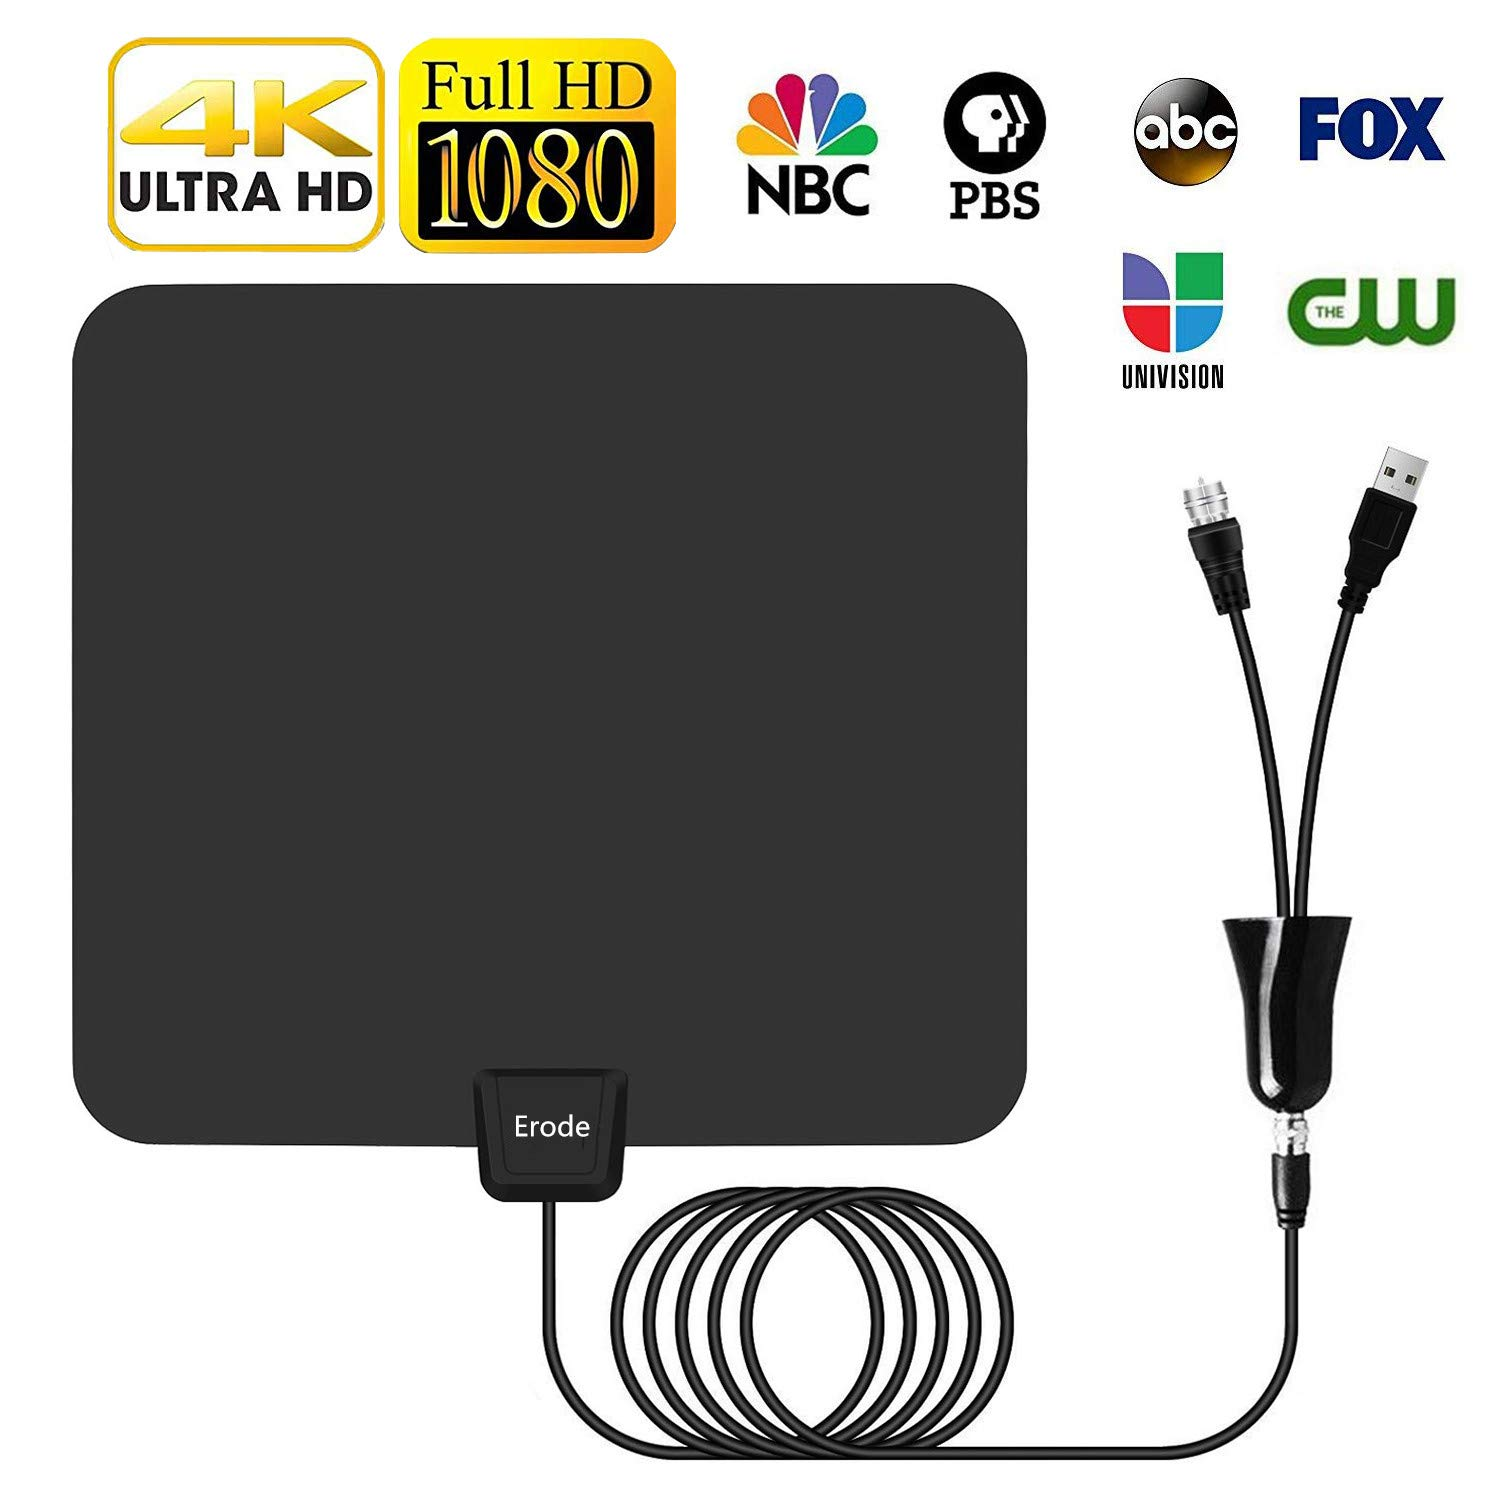 HDTV Antenna, Indoor Digital TV Antenna 65-90Miles Range with Newset Amplifier Signal Booster - 4K Local Channels Broadcast for All Types of Smart Television - Updated 2018 Version